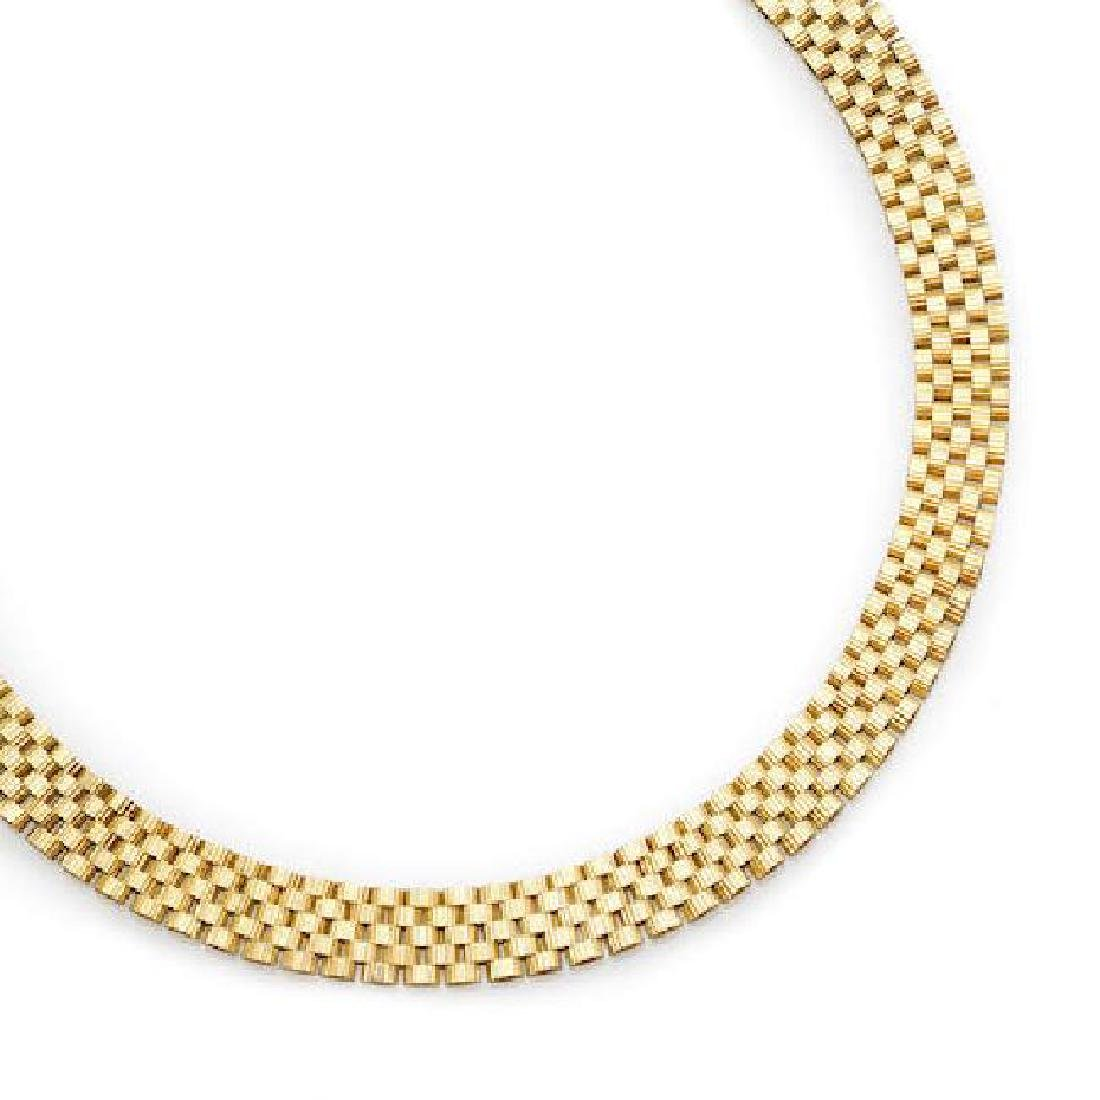 AN 18K GOLD NECKLACE, Tiffany & Co.